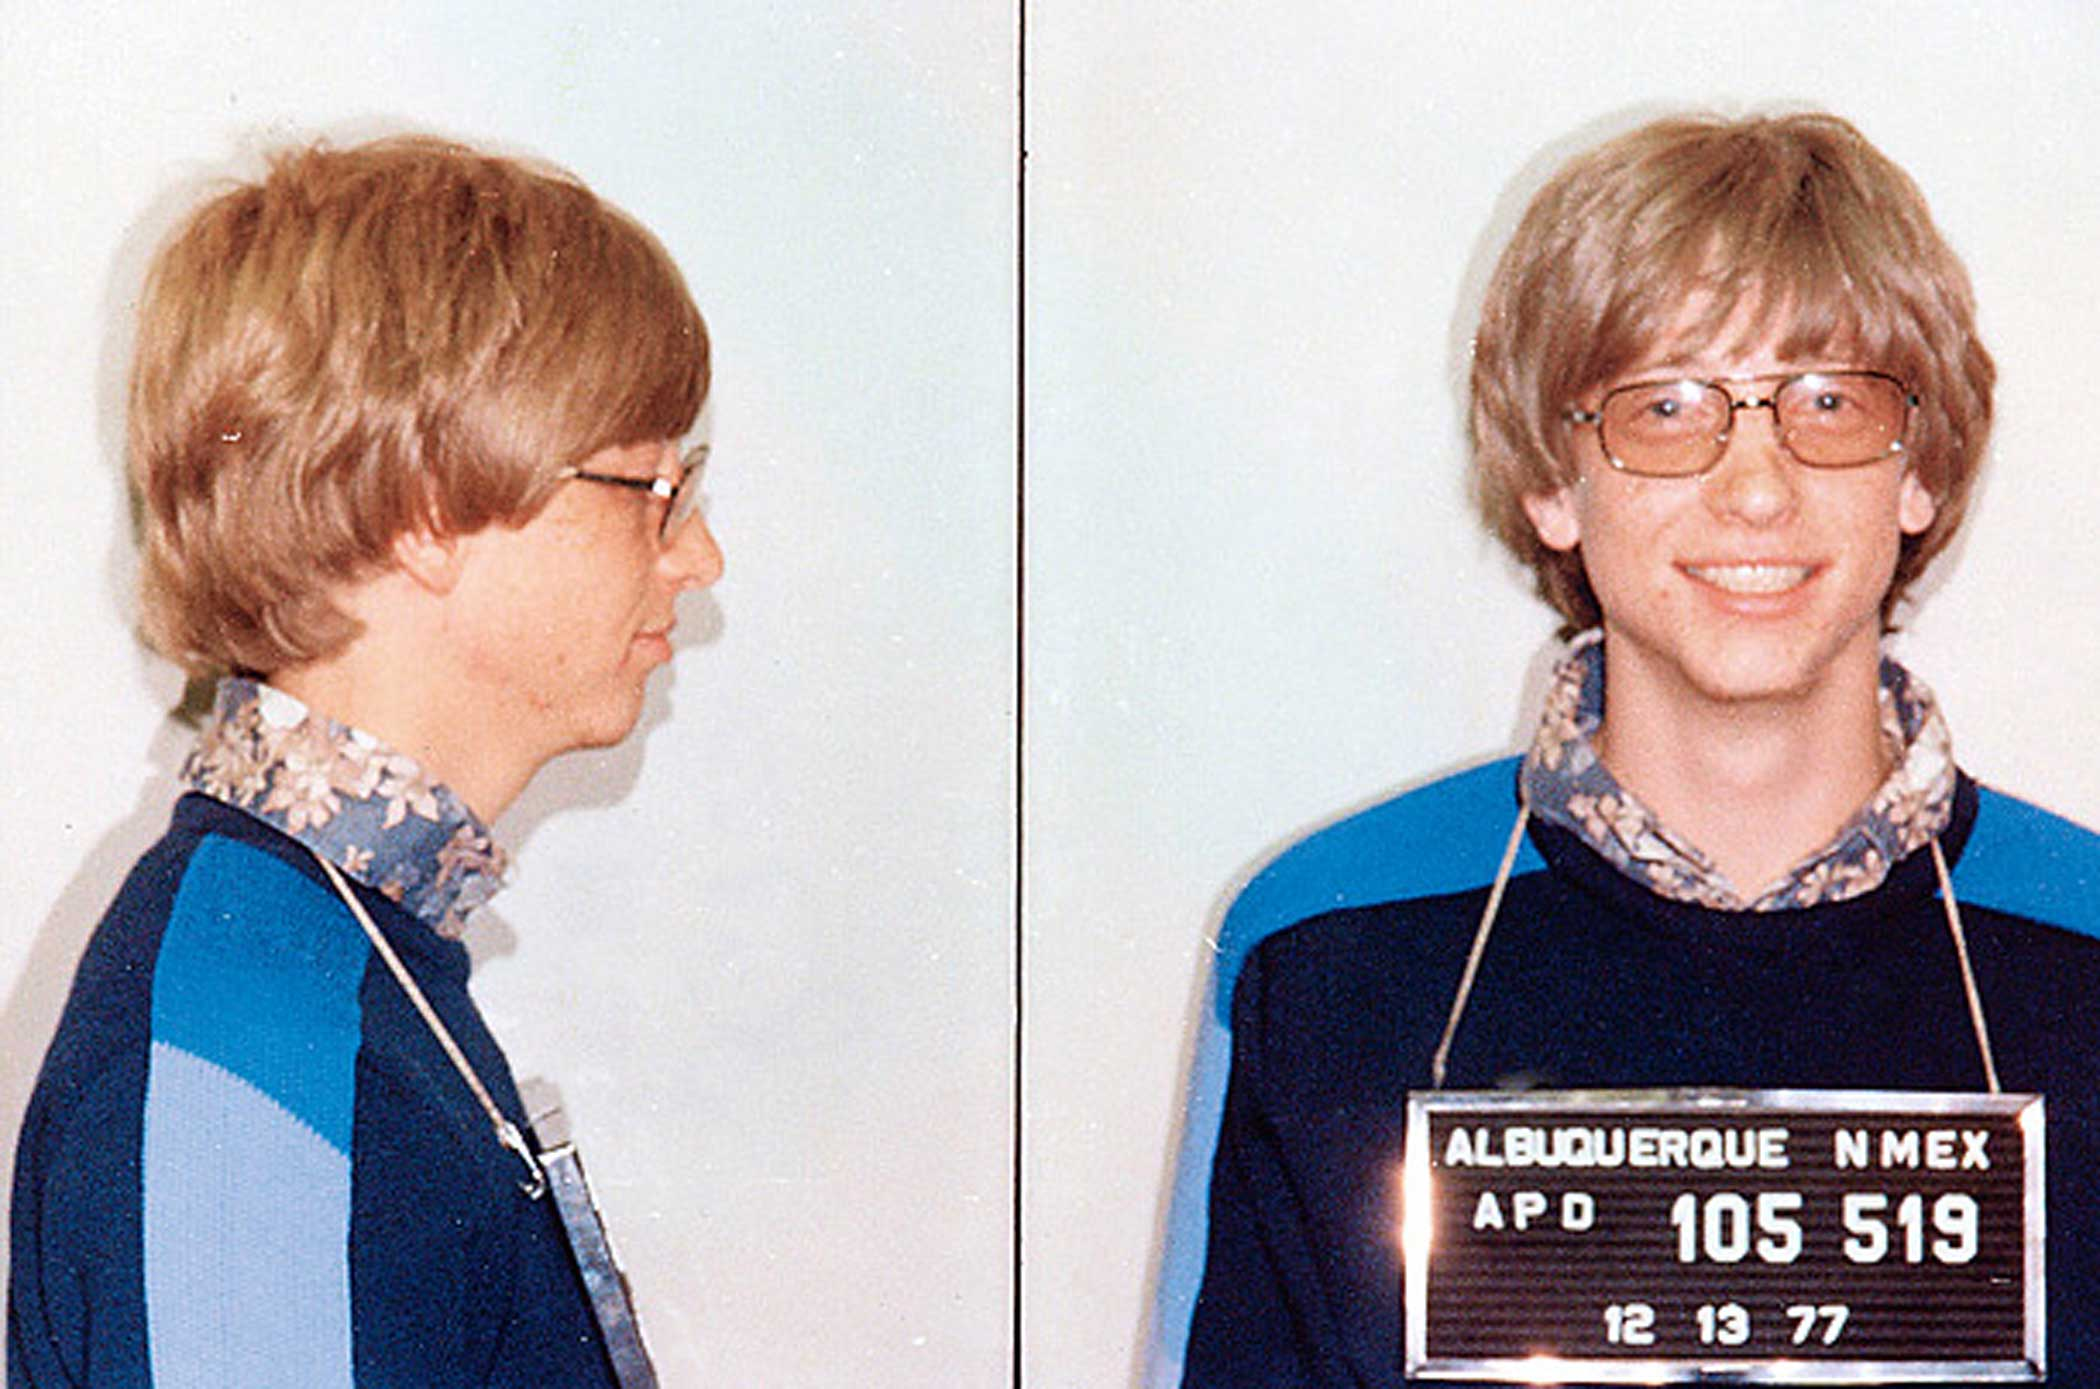 In 1977, Gates was arrested by New Mexico police for speeding.